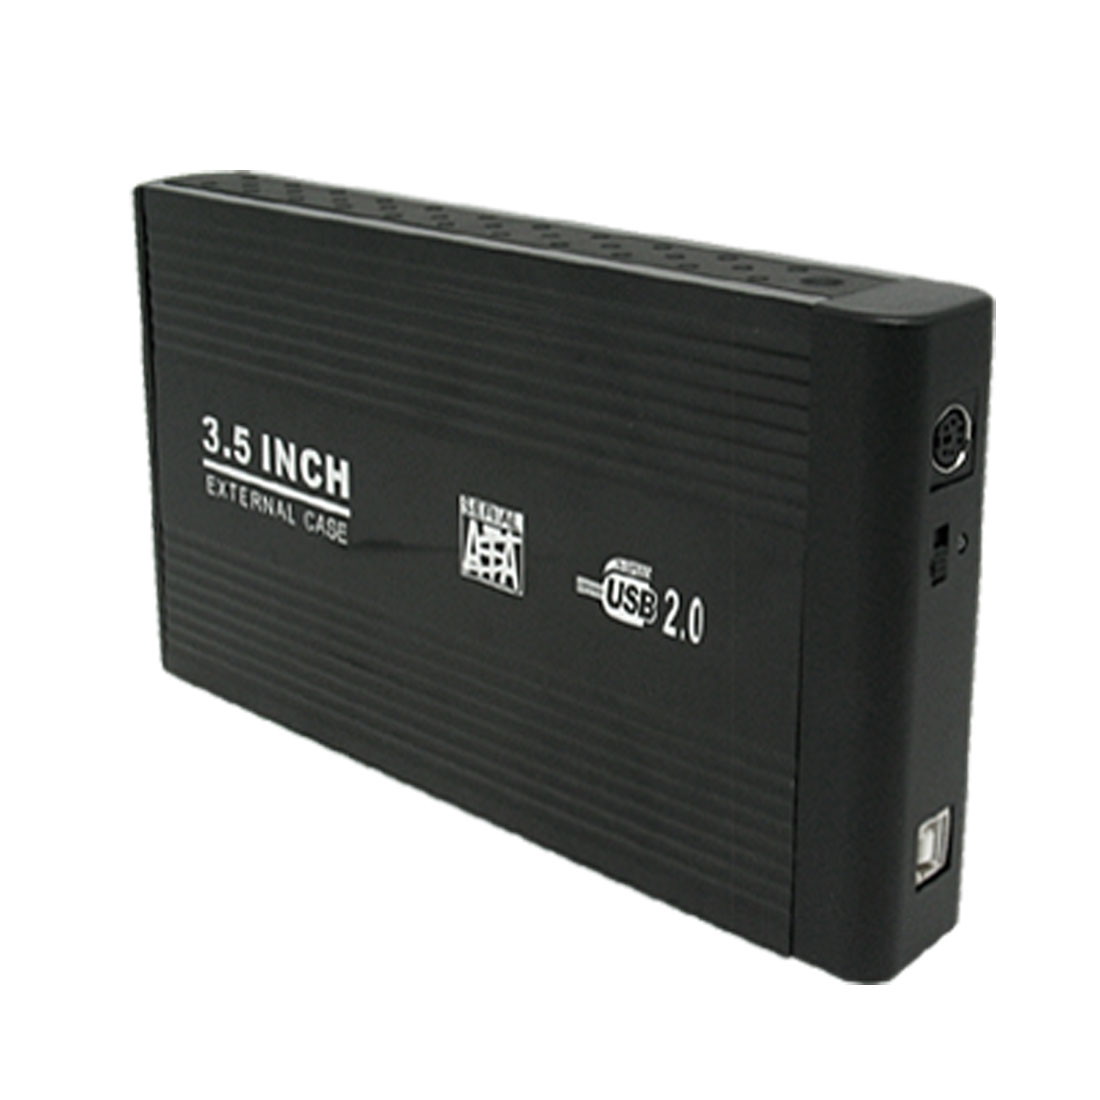 "US Plug AC100-240V 3.5"" USB 2.0 to SATA HDD Hard Drive Disk External Case Enclosure Black"